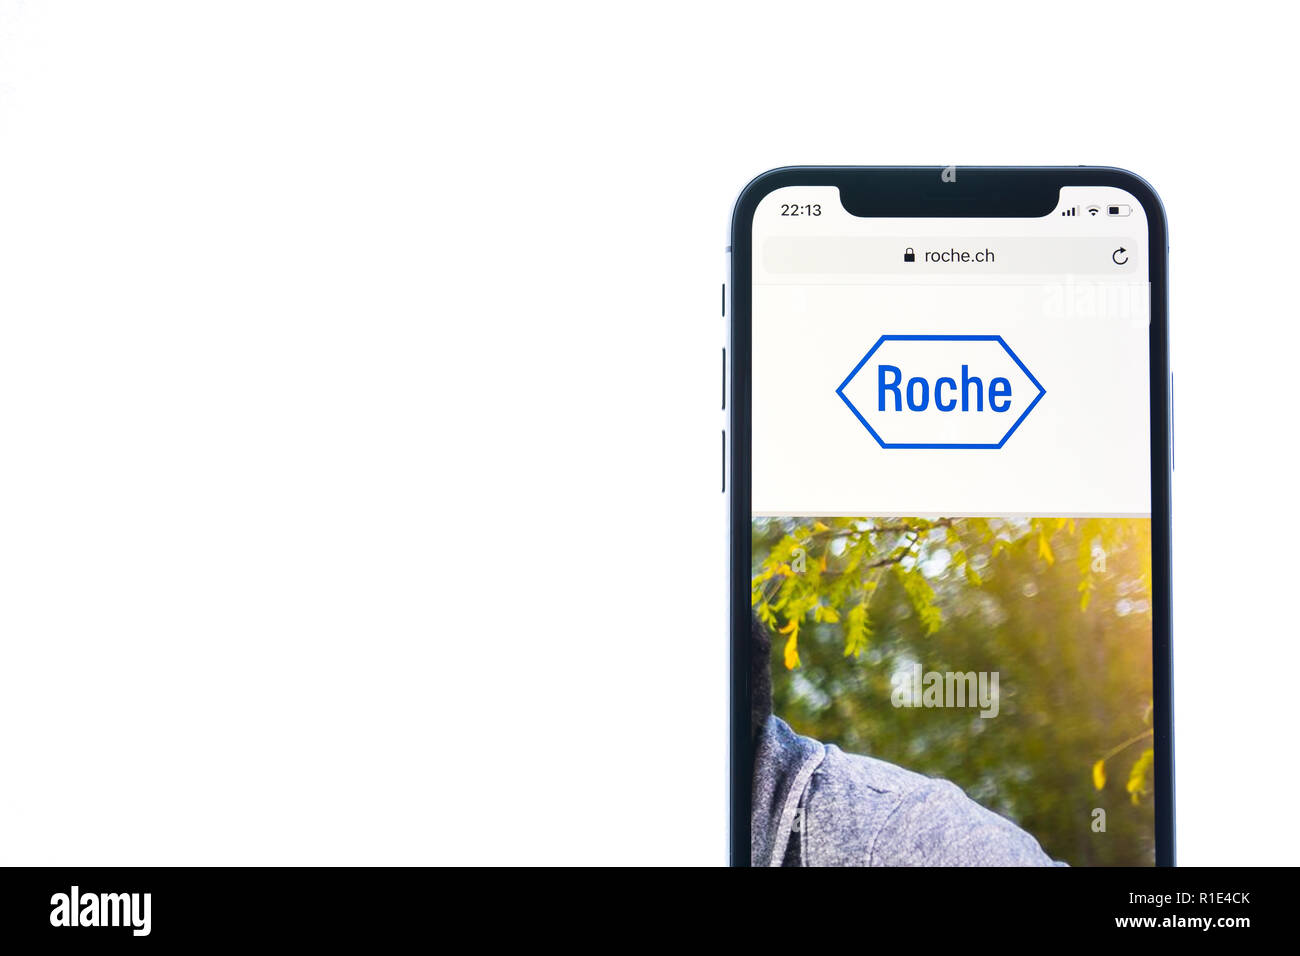 SOLOTHURN, SWITZERLAND - NOVEMBER 11, 2018: Roche logo displayed on a modern smartphone - Stock Image